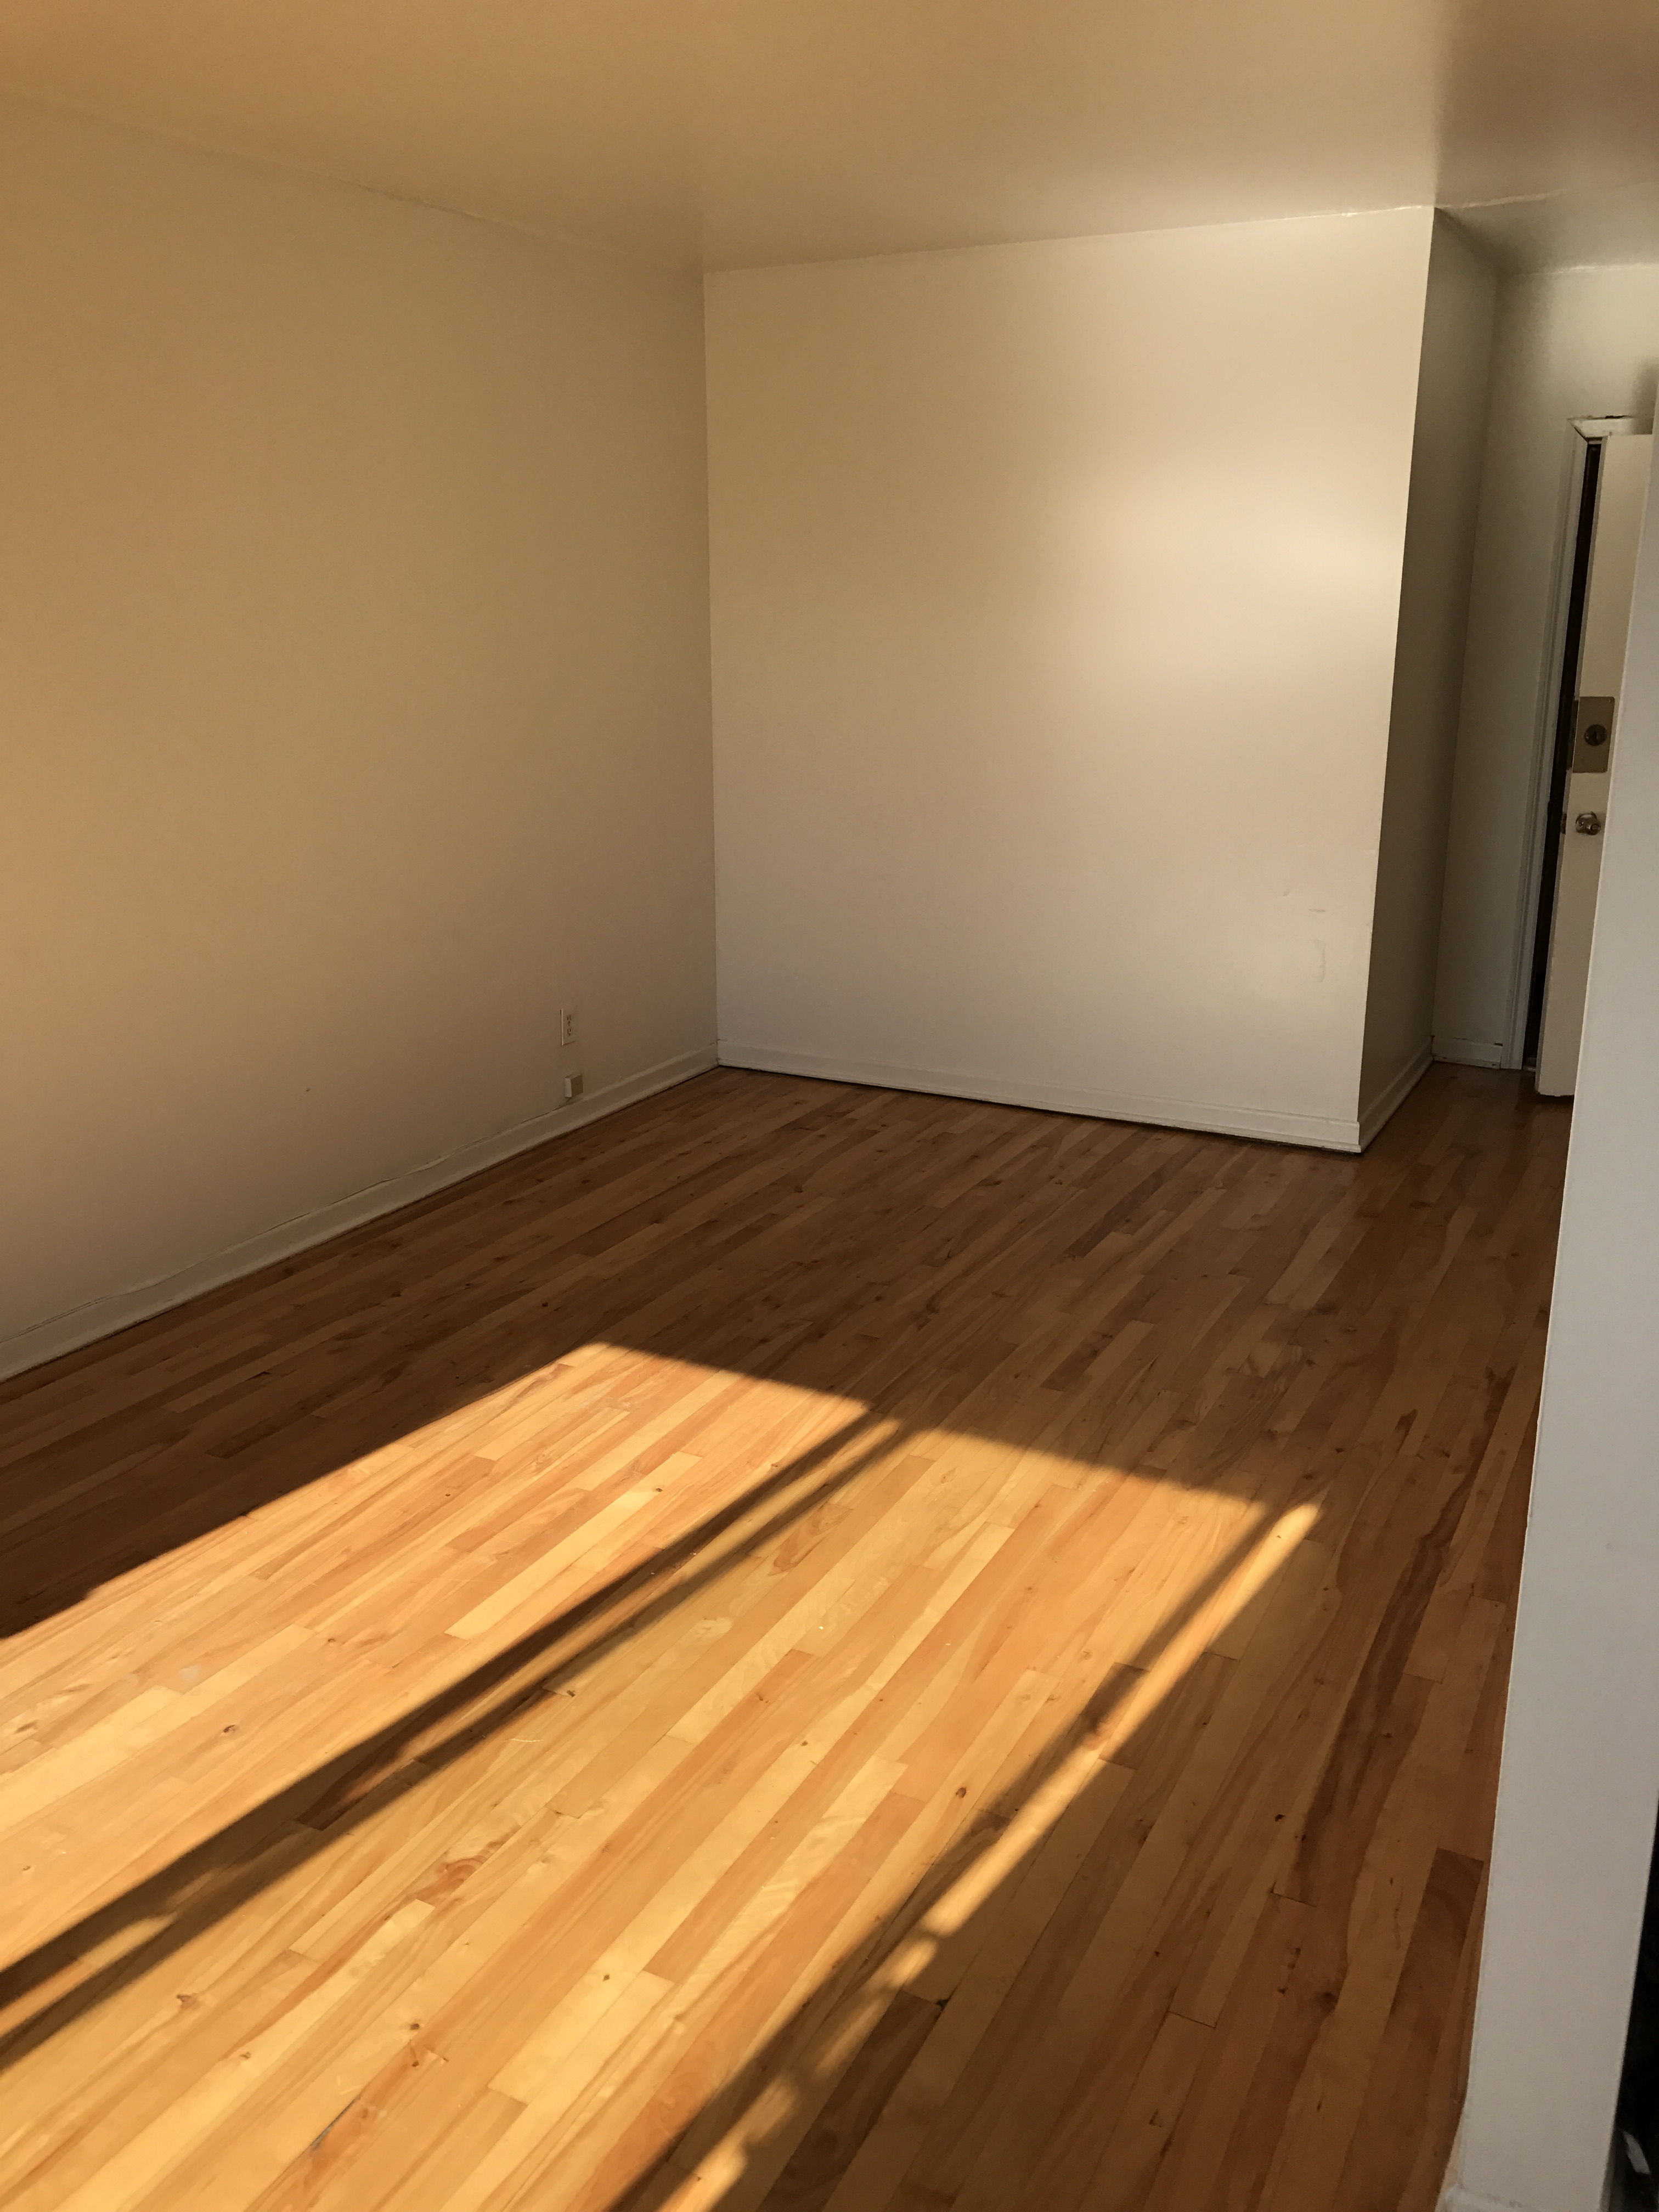 1 bedroom Apartments for rent in Laval at 4750 Samson - Photo 04 - RentersPages – L21500